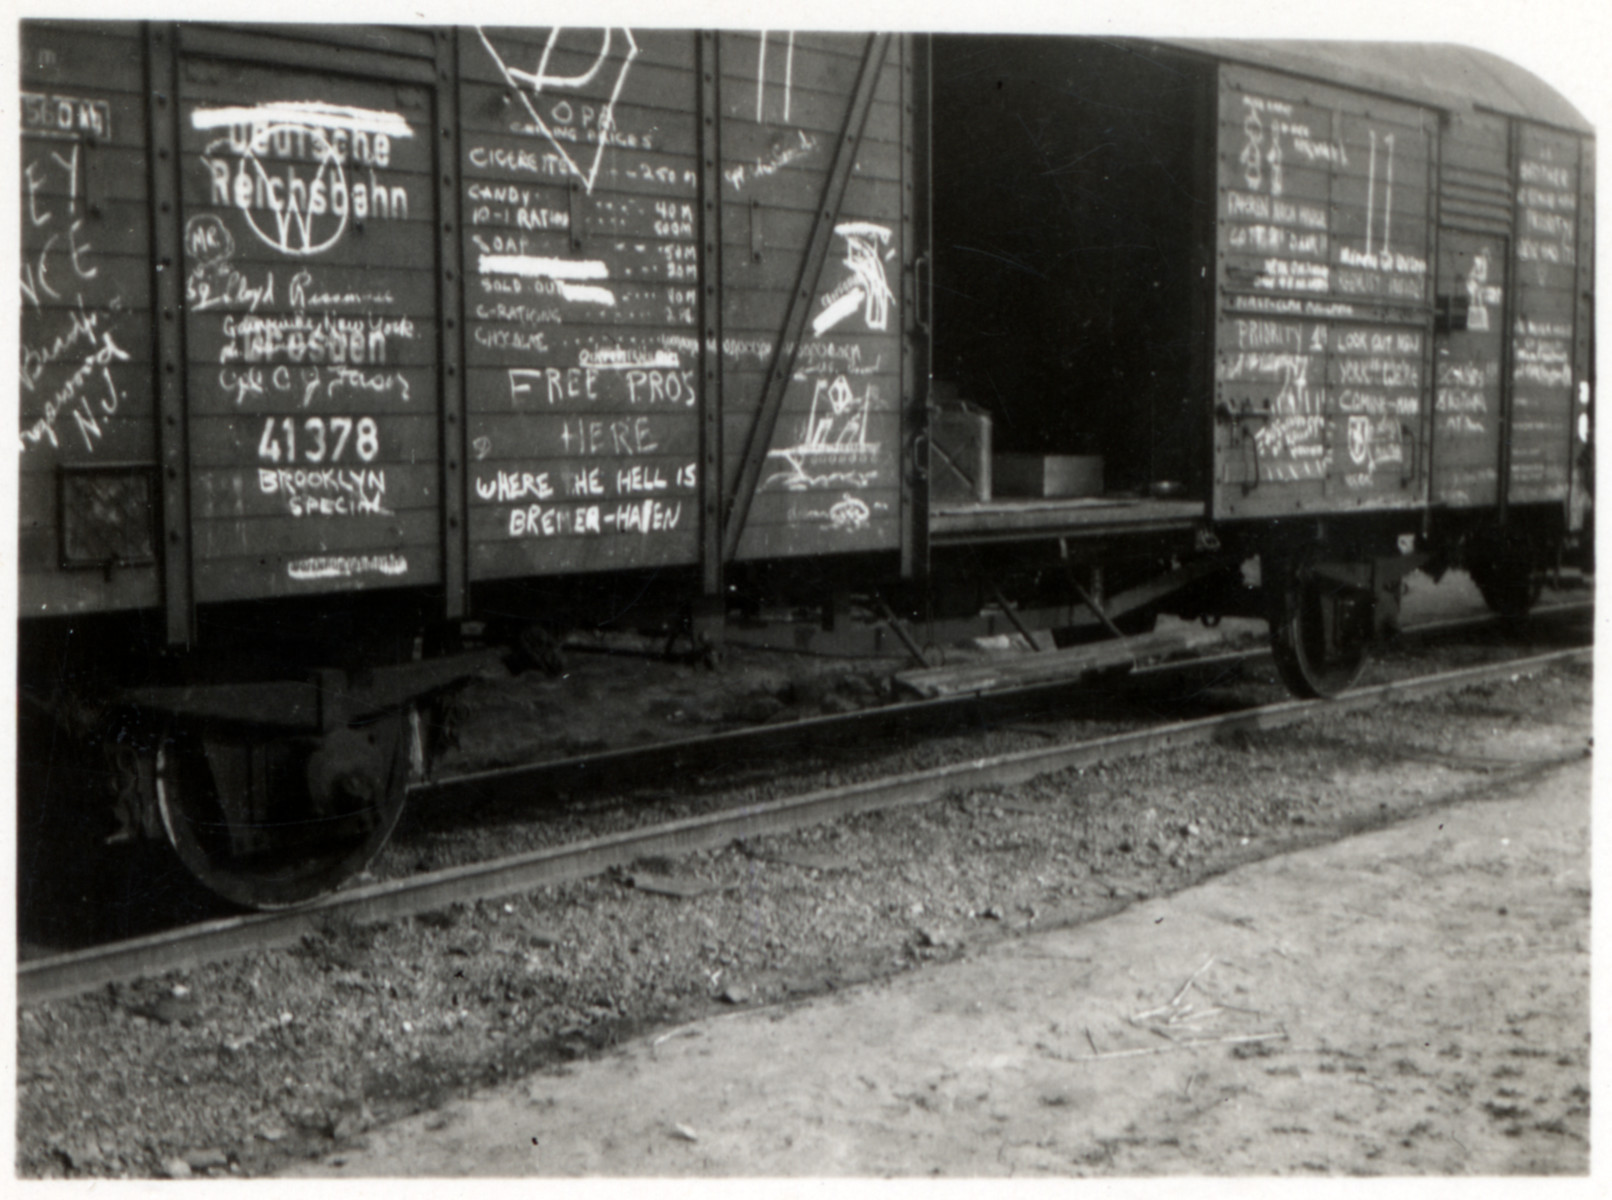 View of a cattle car used by American GIs and covered with their graffiti.